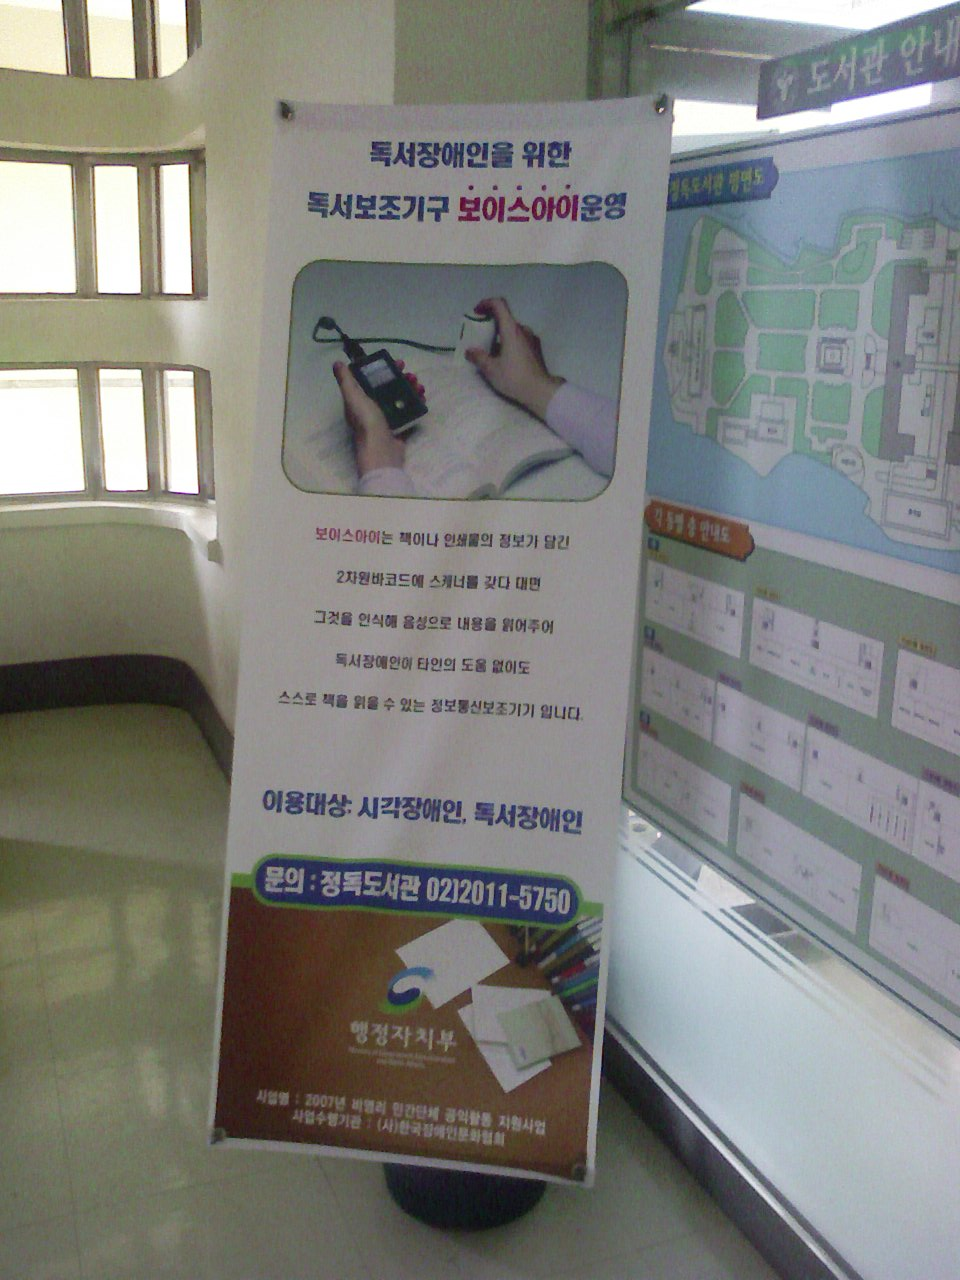 VoiceEye (OCR reader for the blind) available in Korean library